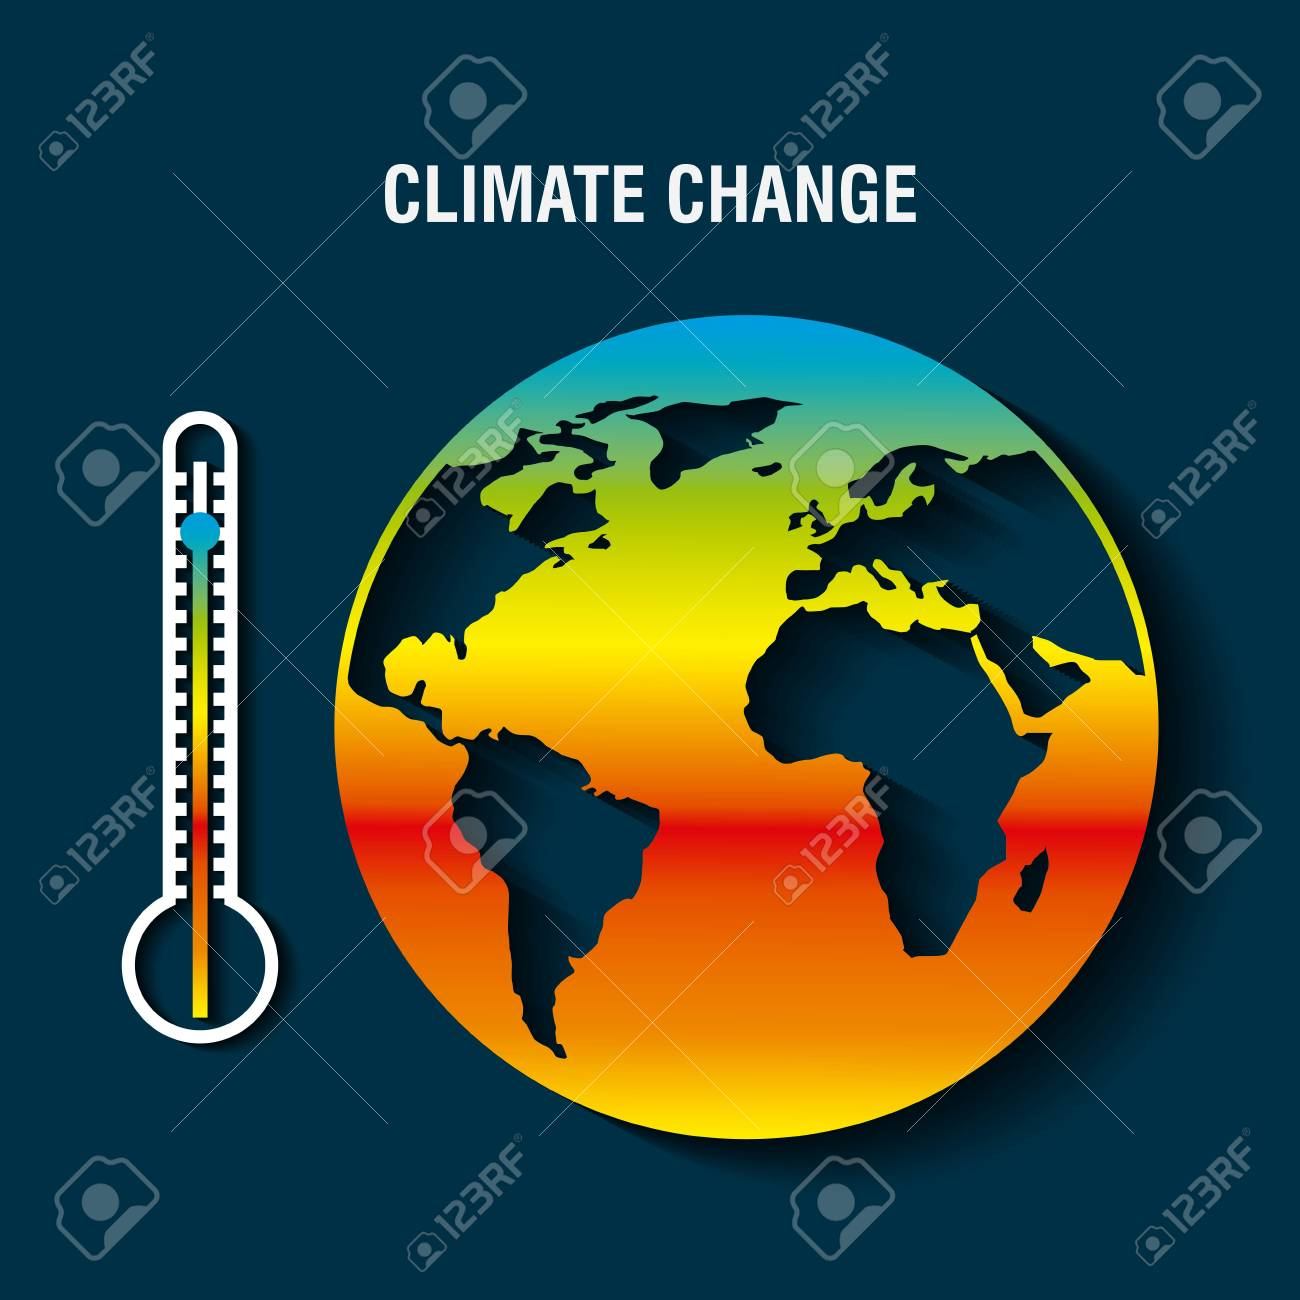 planet earth sick with thermometer warming concept vector illustration - 95908455